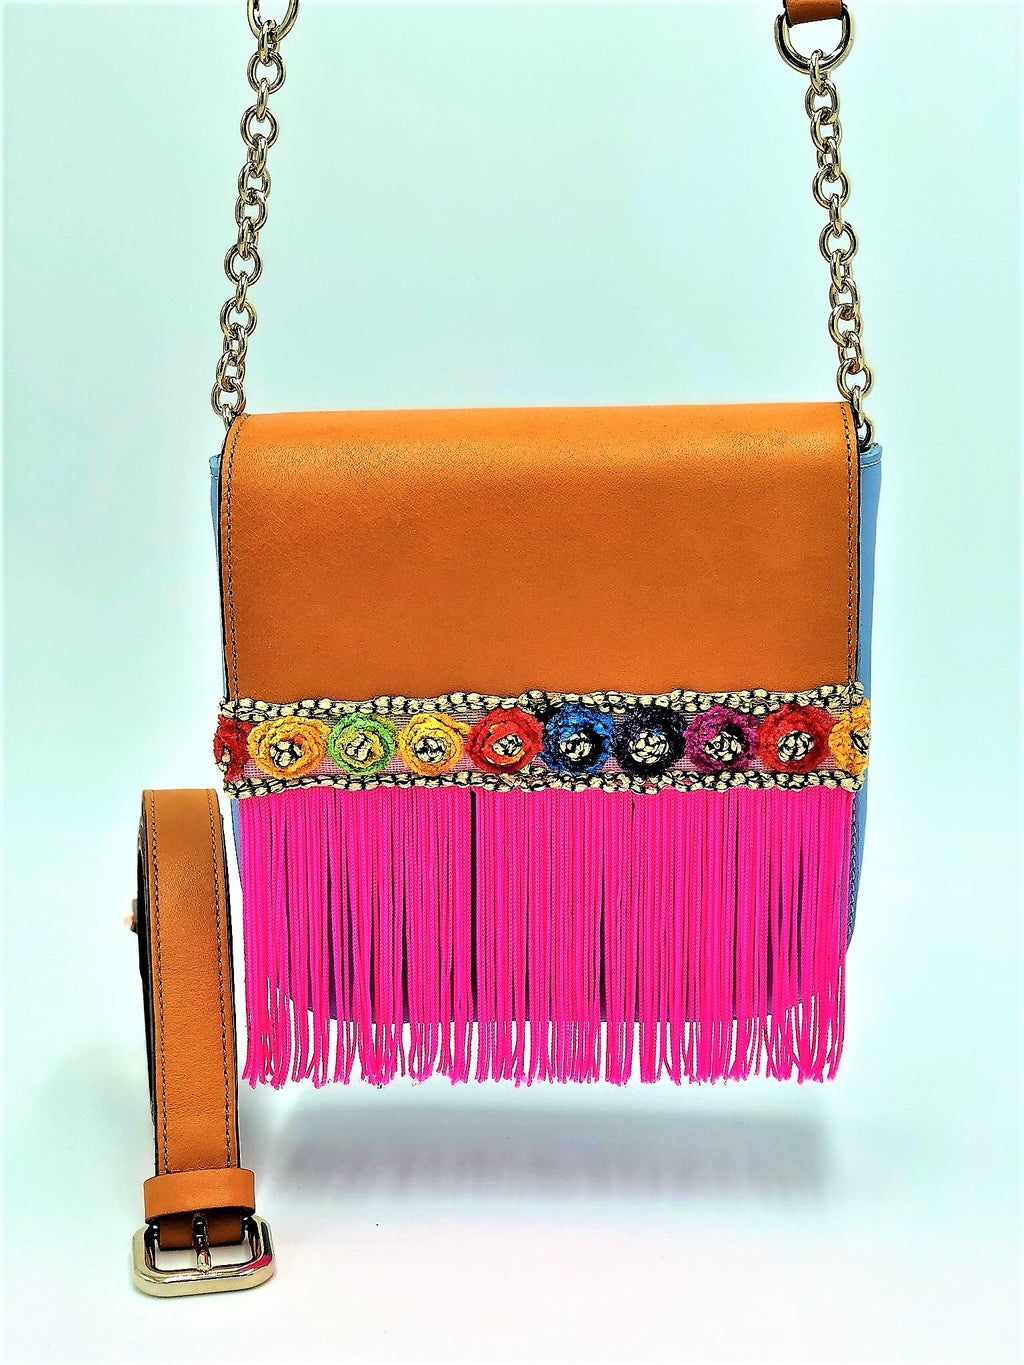 Orange and blue leather bag with neon pink fringes